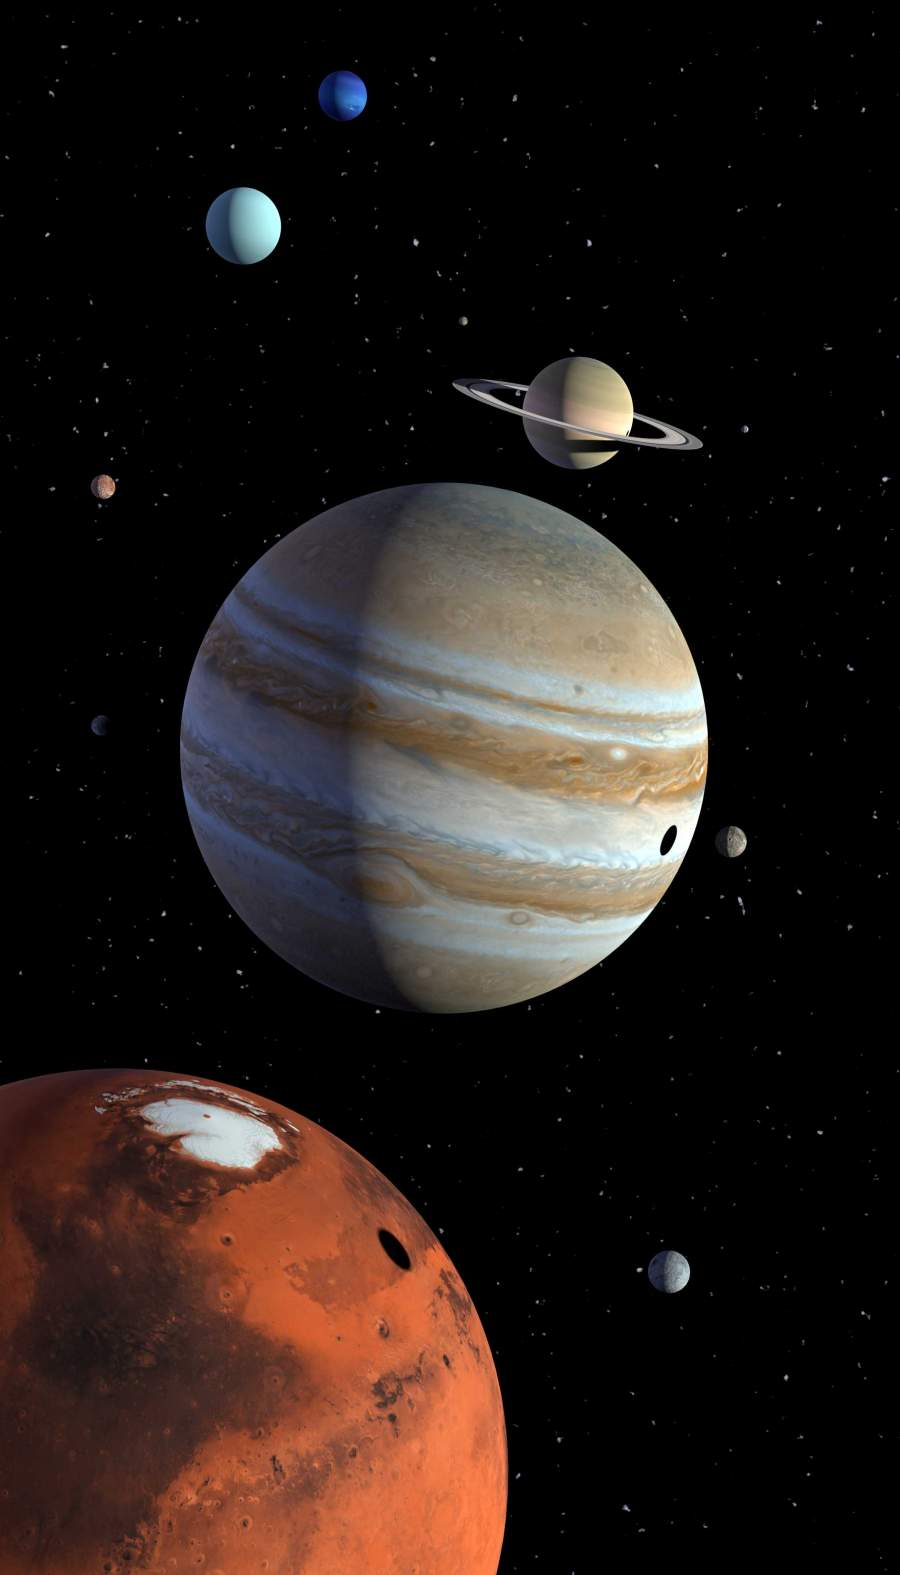 Solar System Planets iPhone Wallpaper